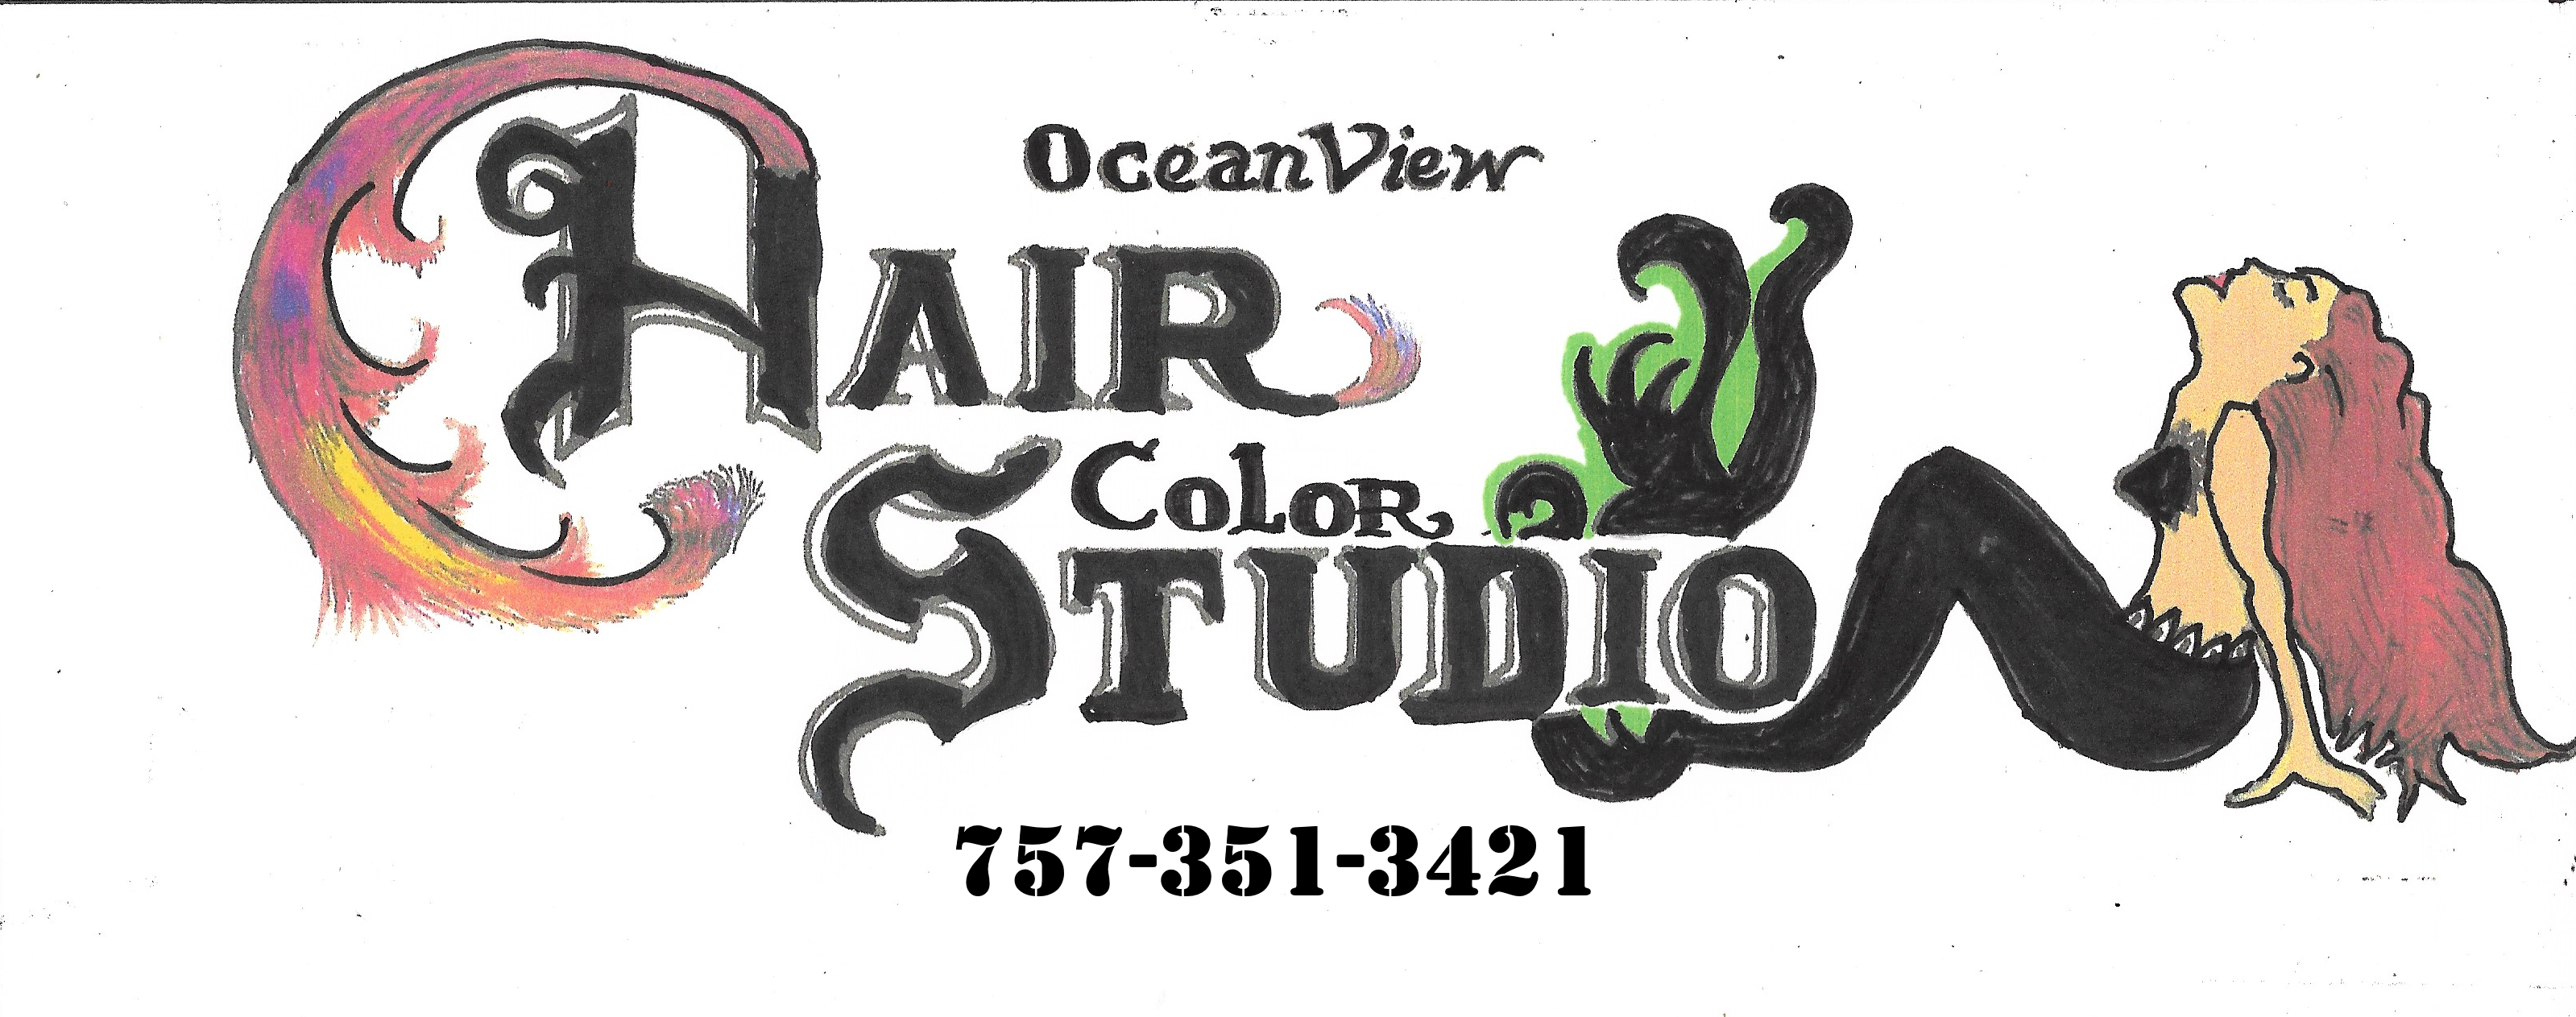 Ocean View Hair Color Studio